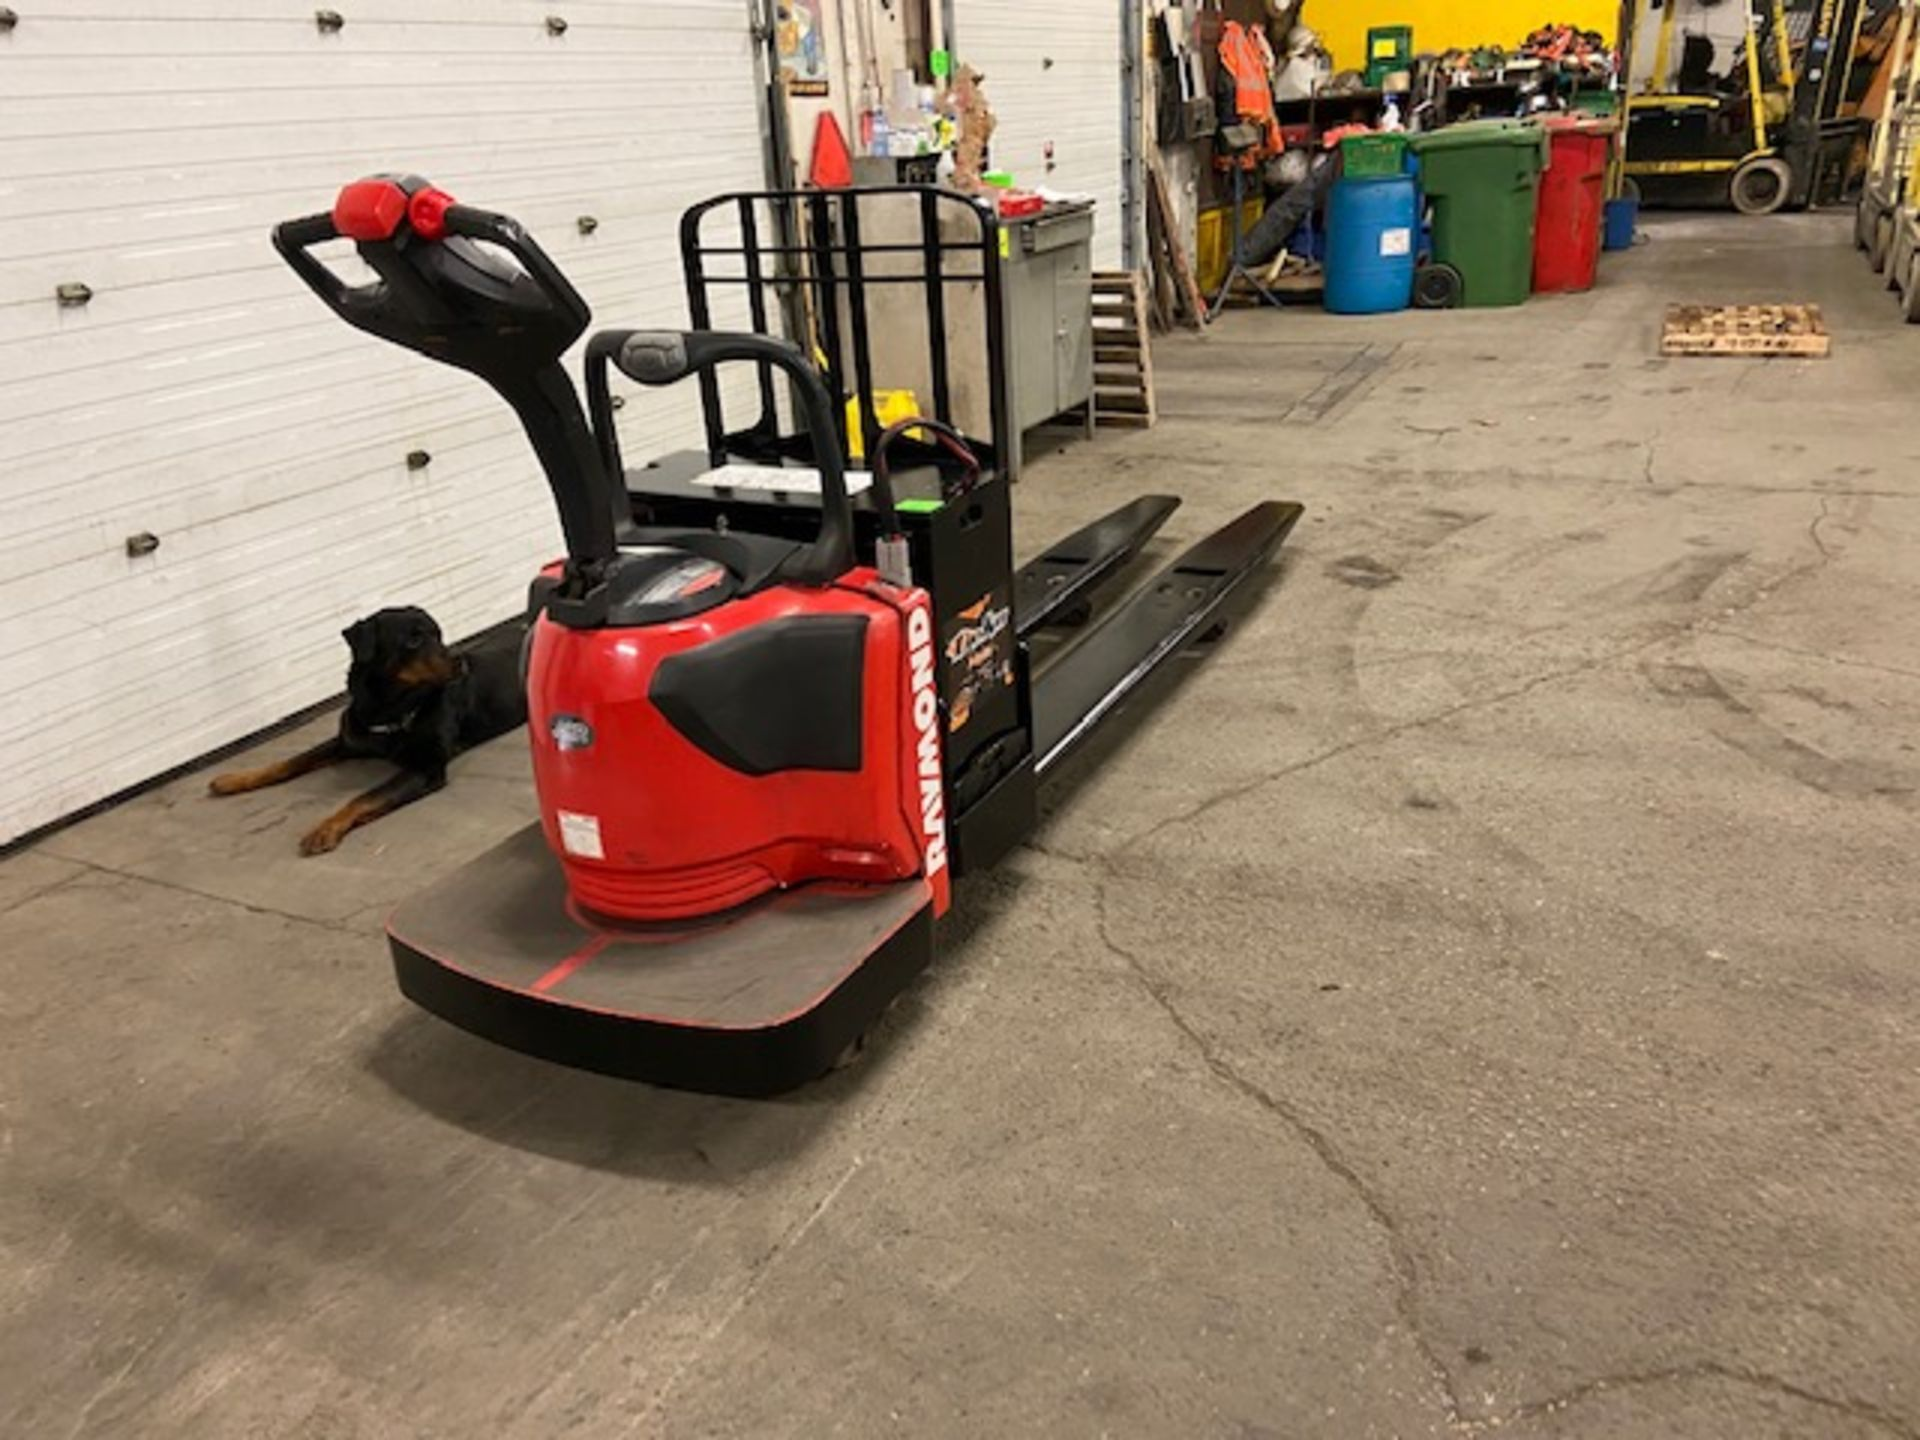 2012 Raymond Electric Ride on Powered Pallet Cart Lift 8000lbs capacity 8' Long LOW HOURS - Image 3 of 3